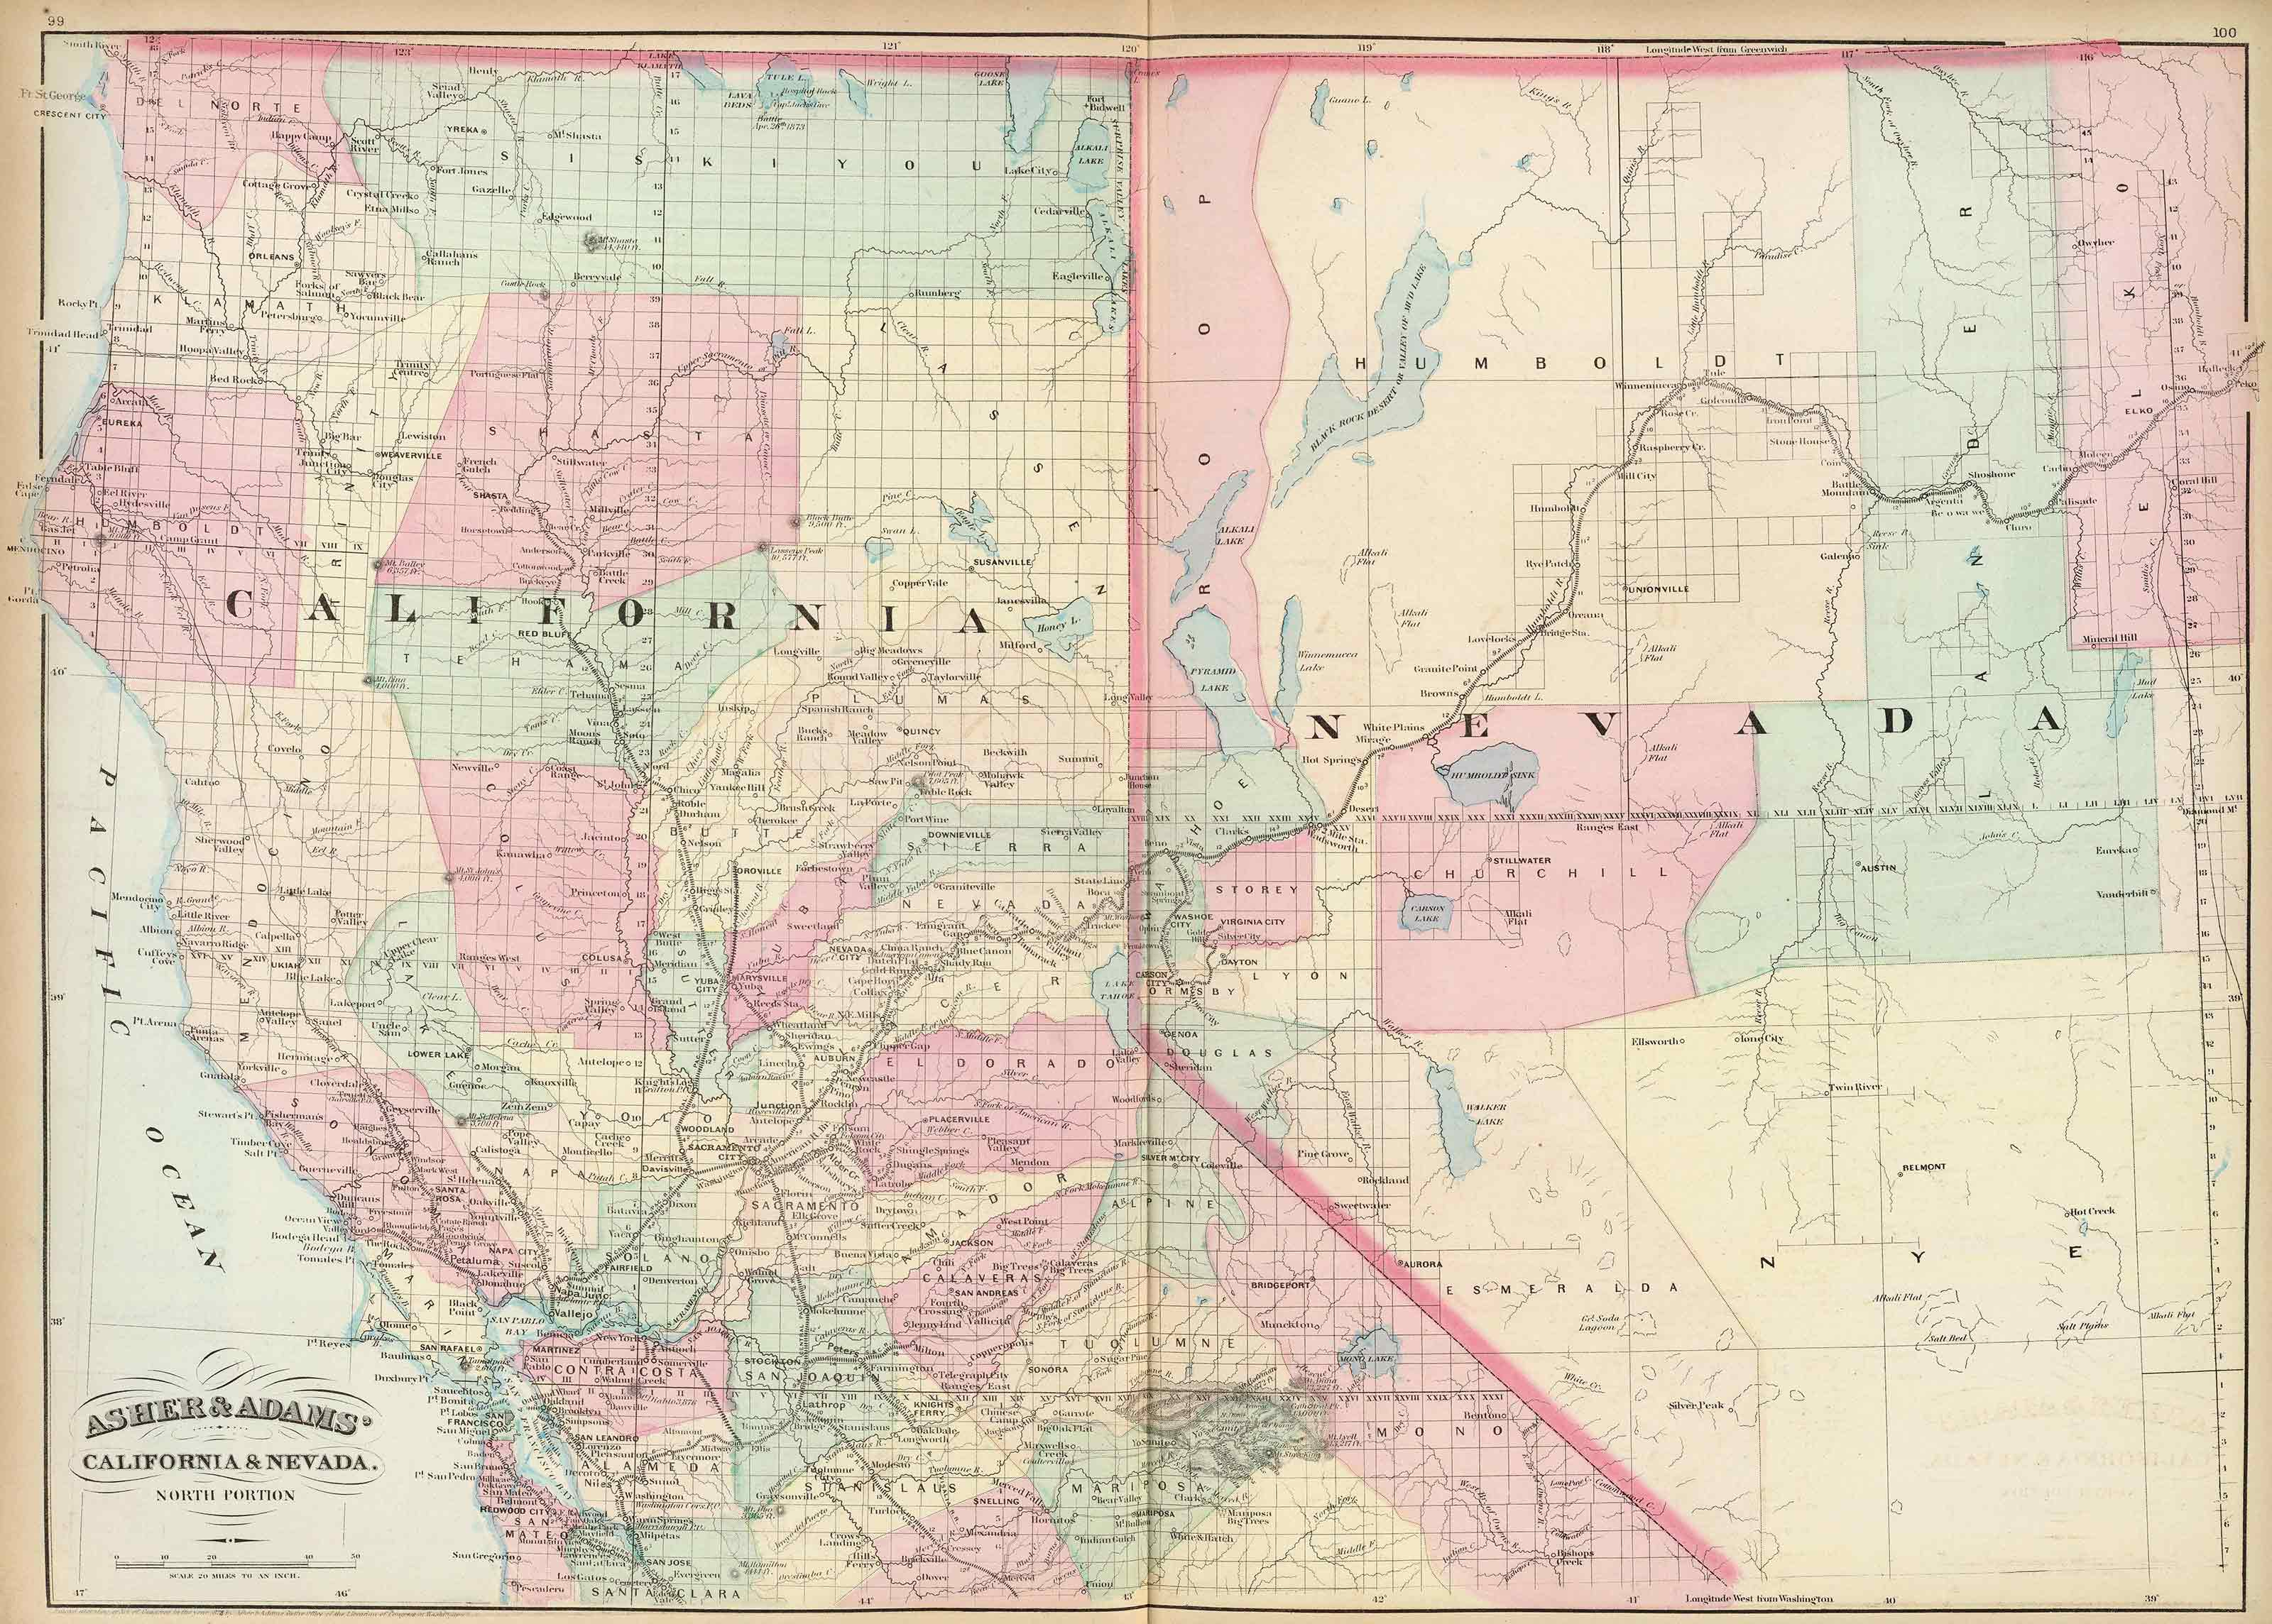 Old Historical City, County and State Maps of Nevada